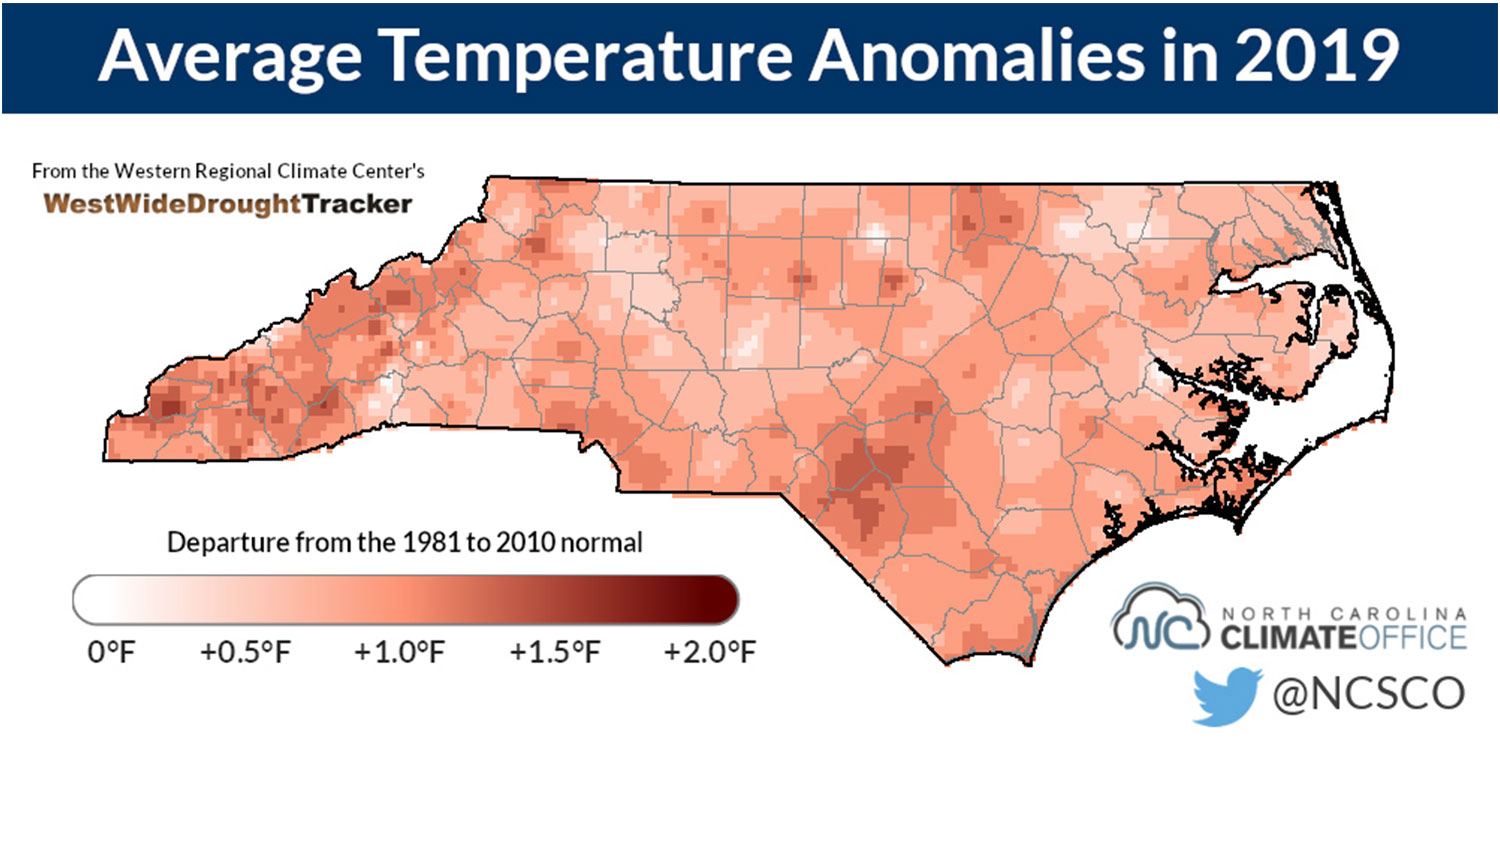 map illustration showing average temperatures in North Carolina in 2019